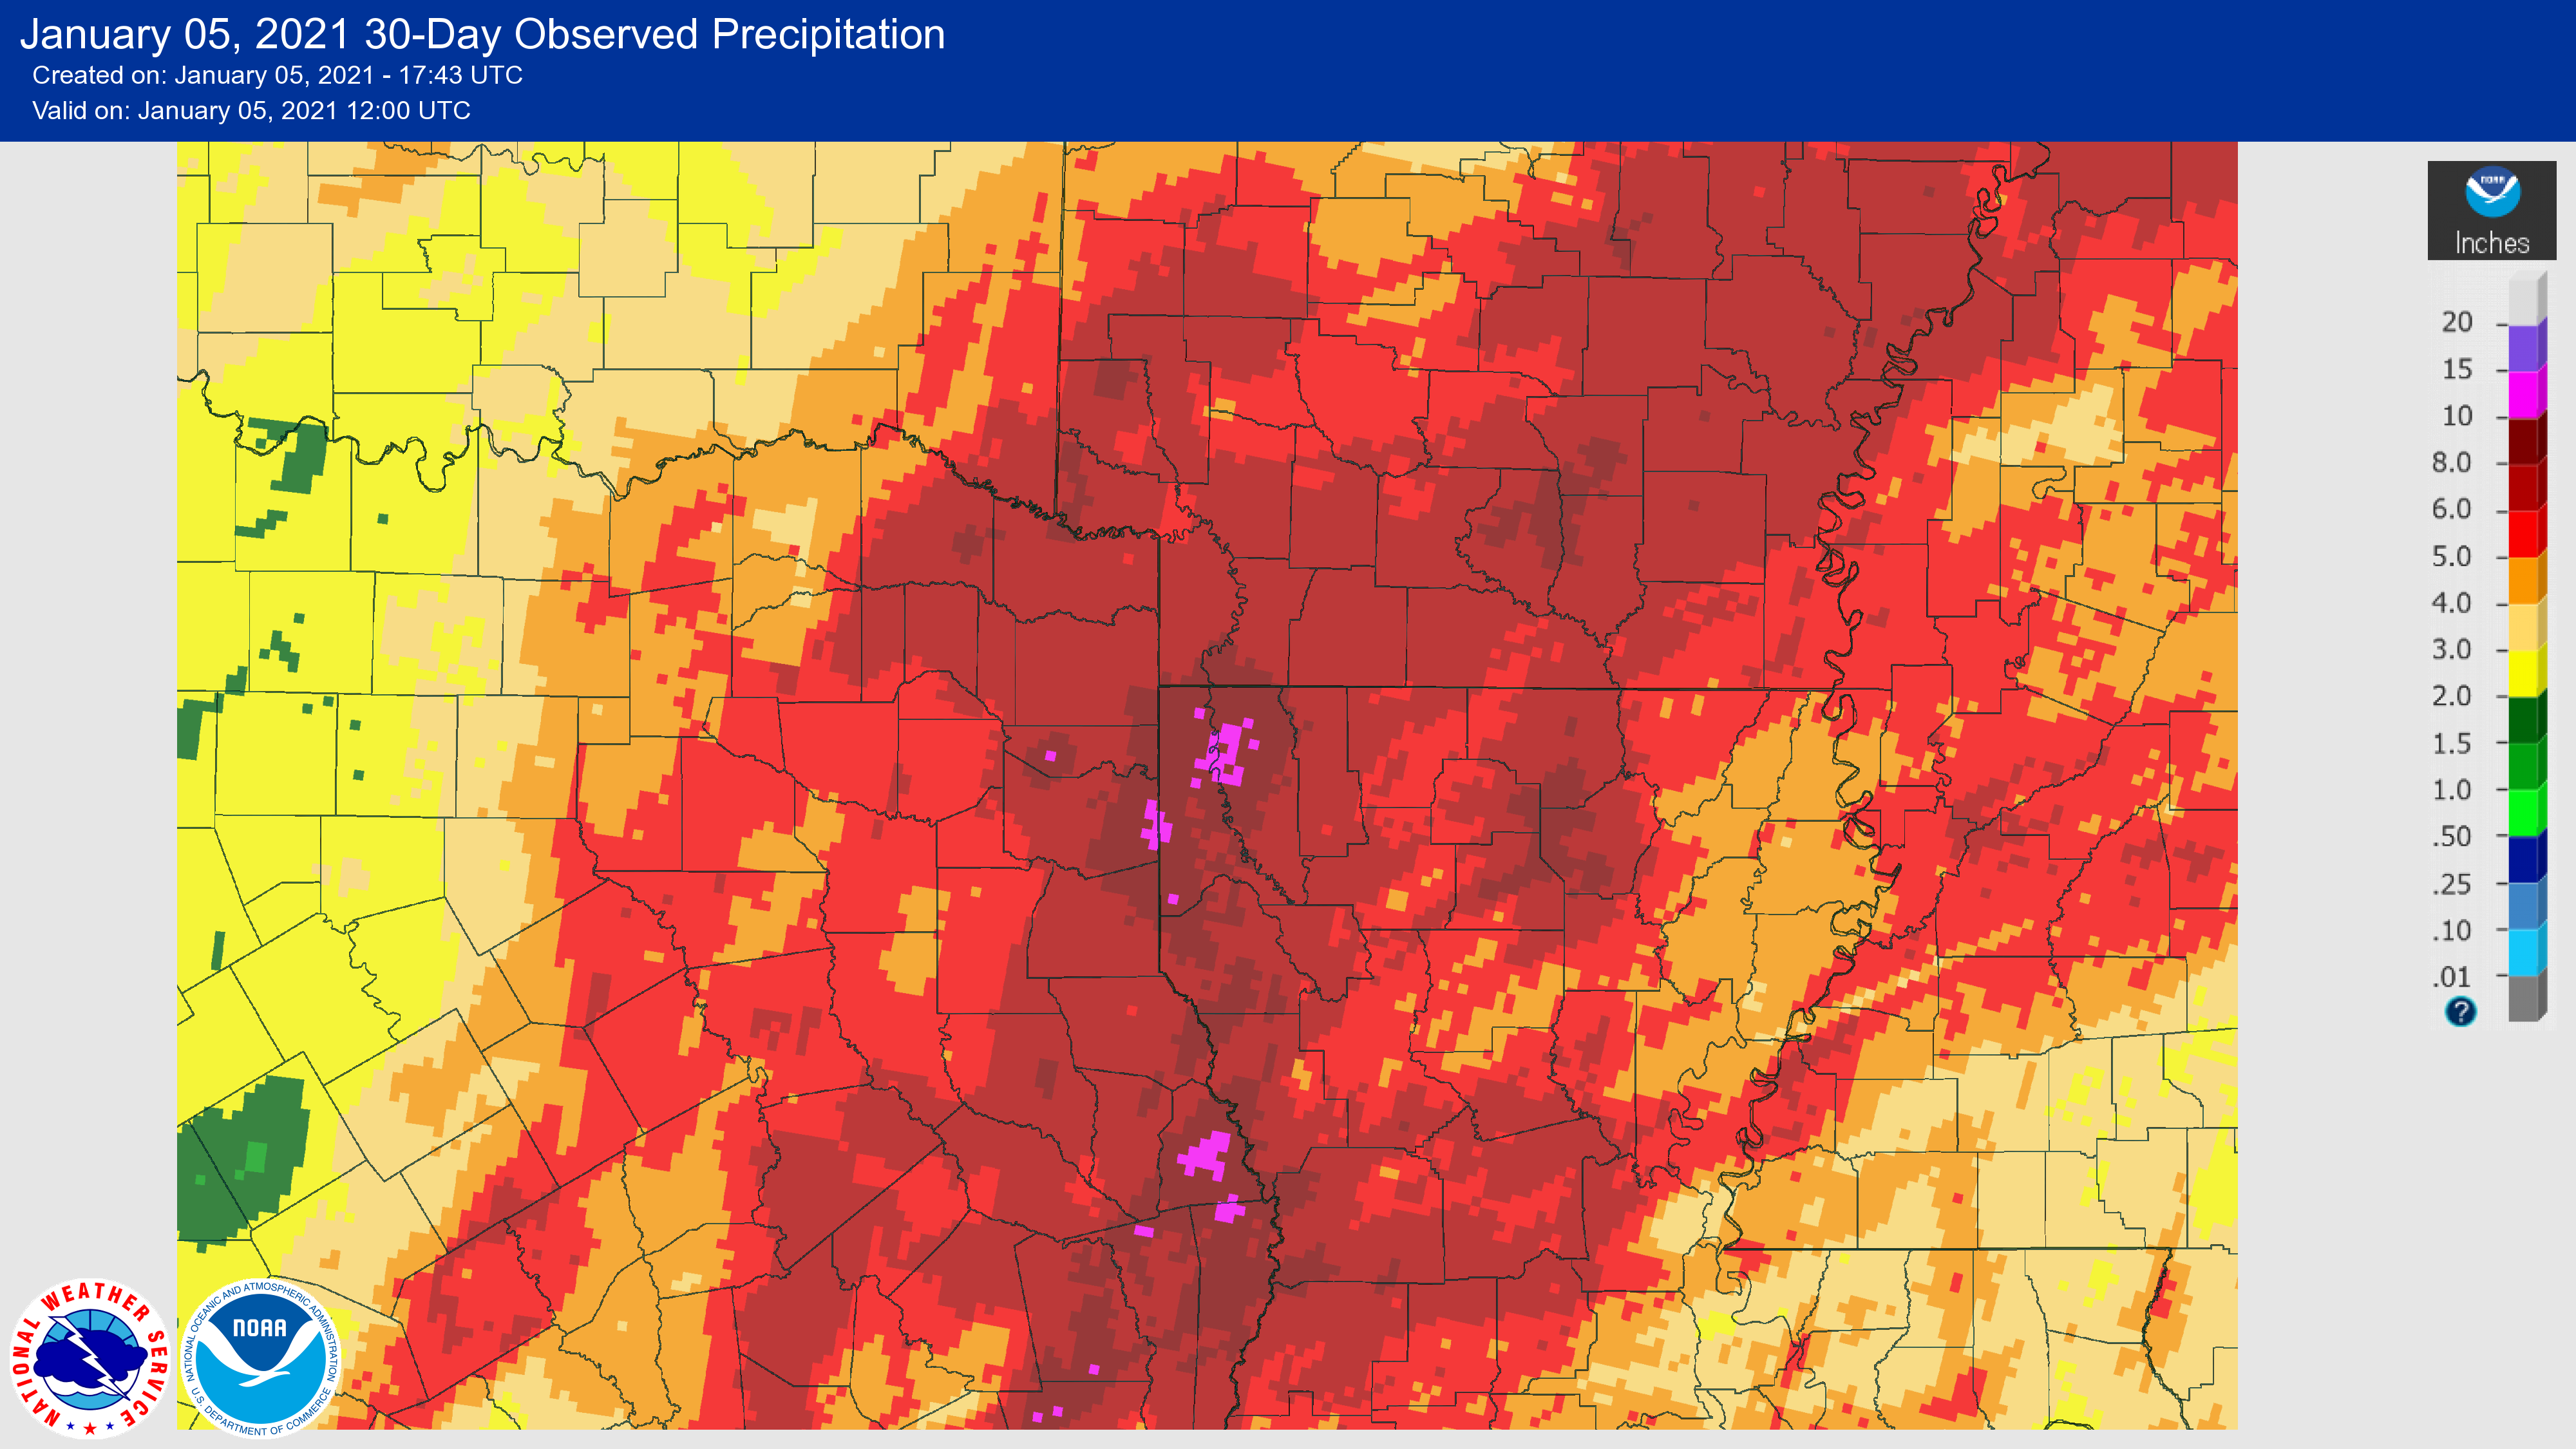 Rainfall in last 30 days to January 5, 2021.